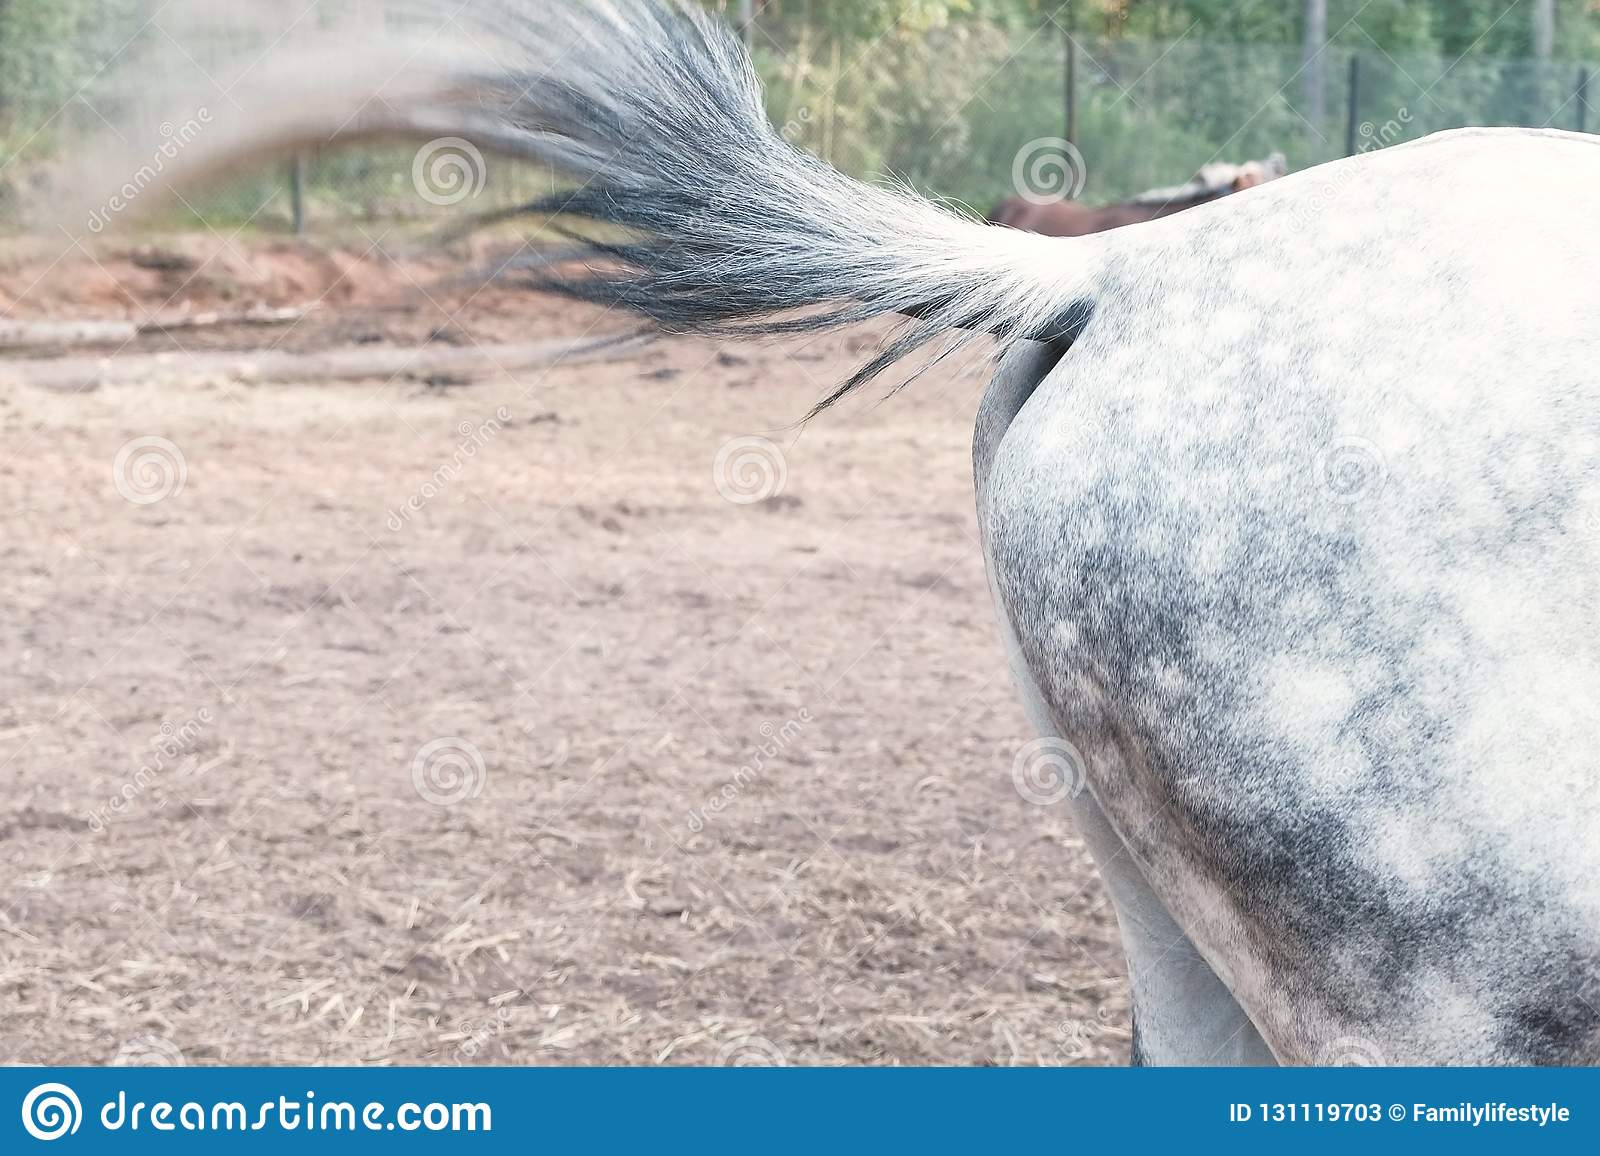 Horse beats a tail on the body, waving off insects.